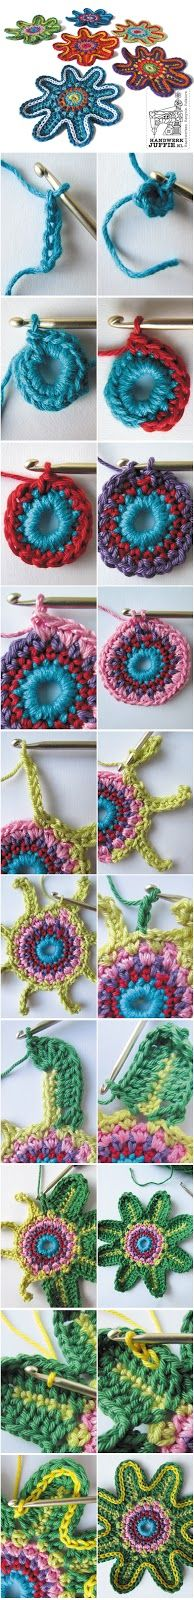 crochet flowers tutorial!! luv!